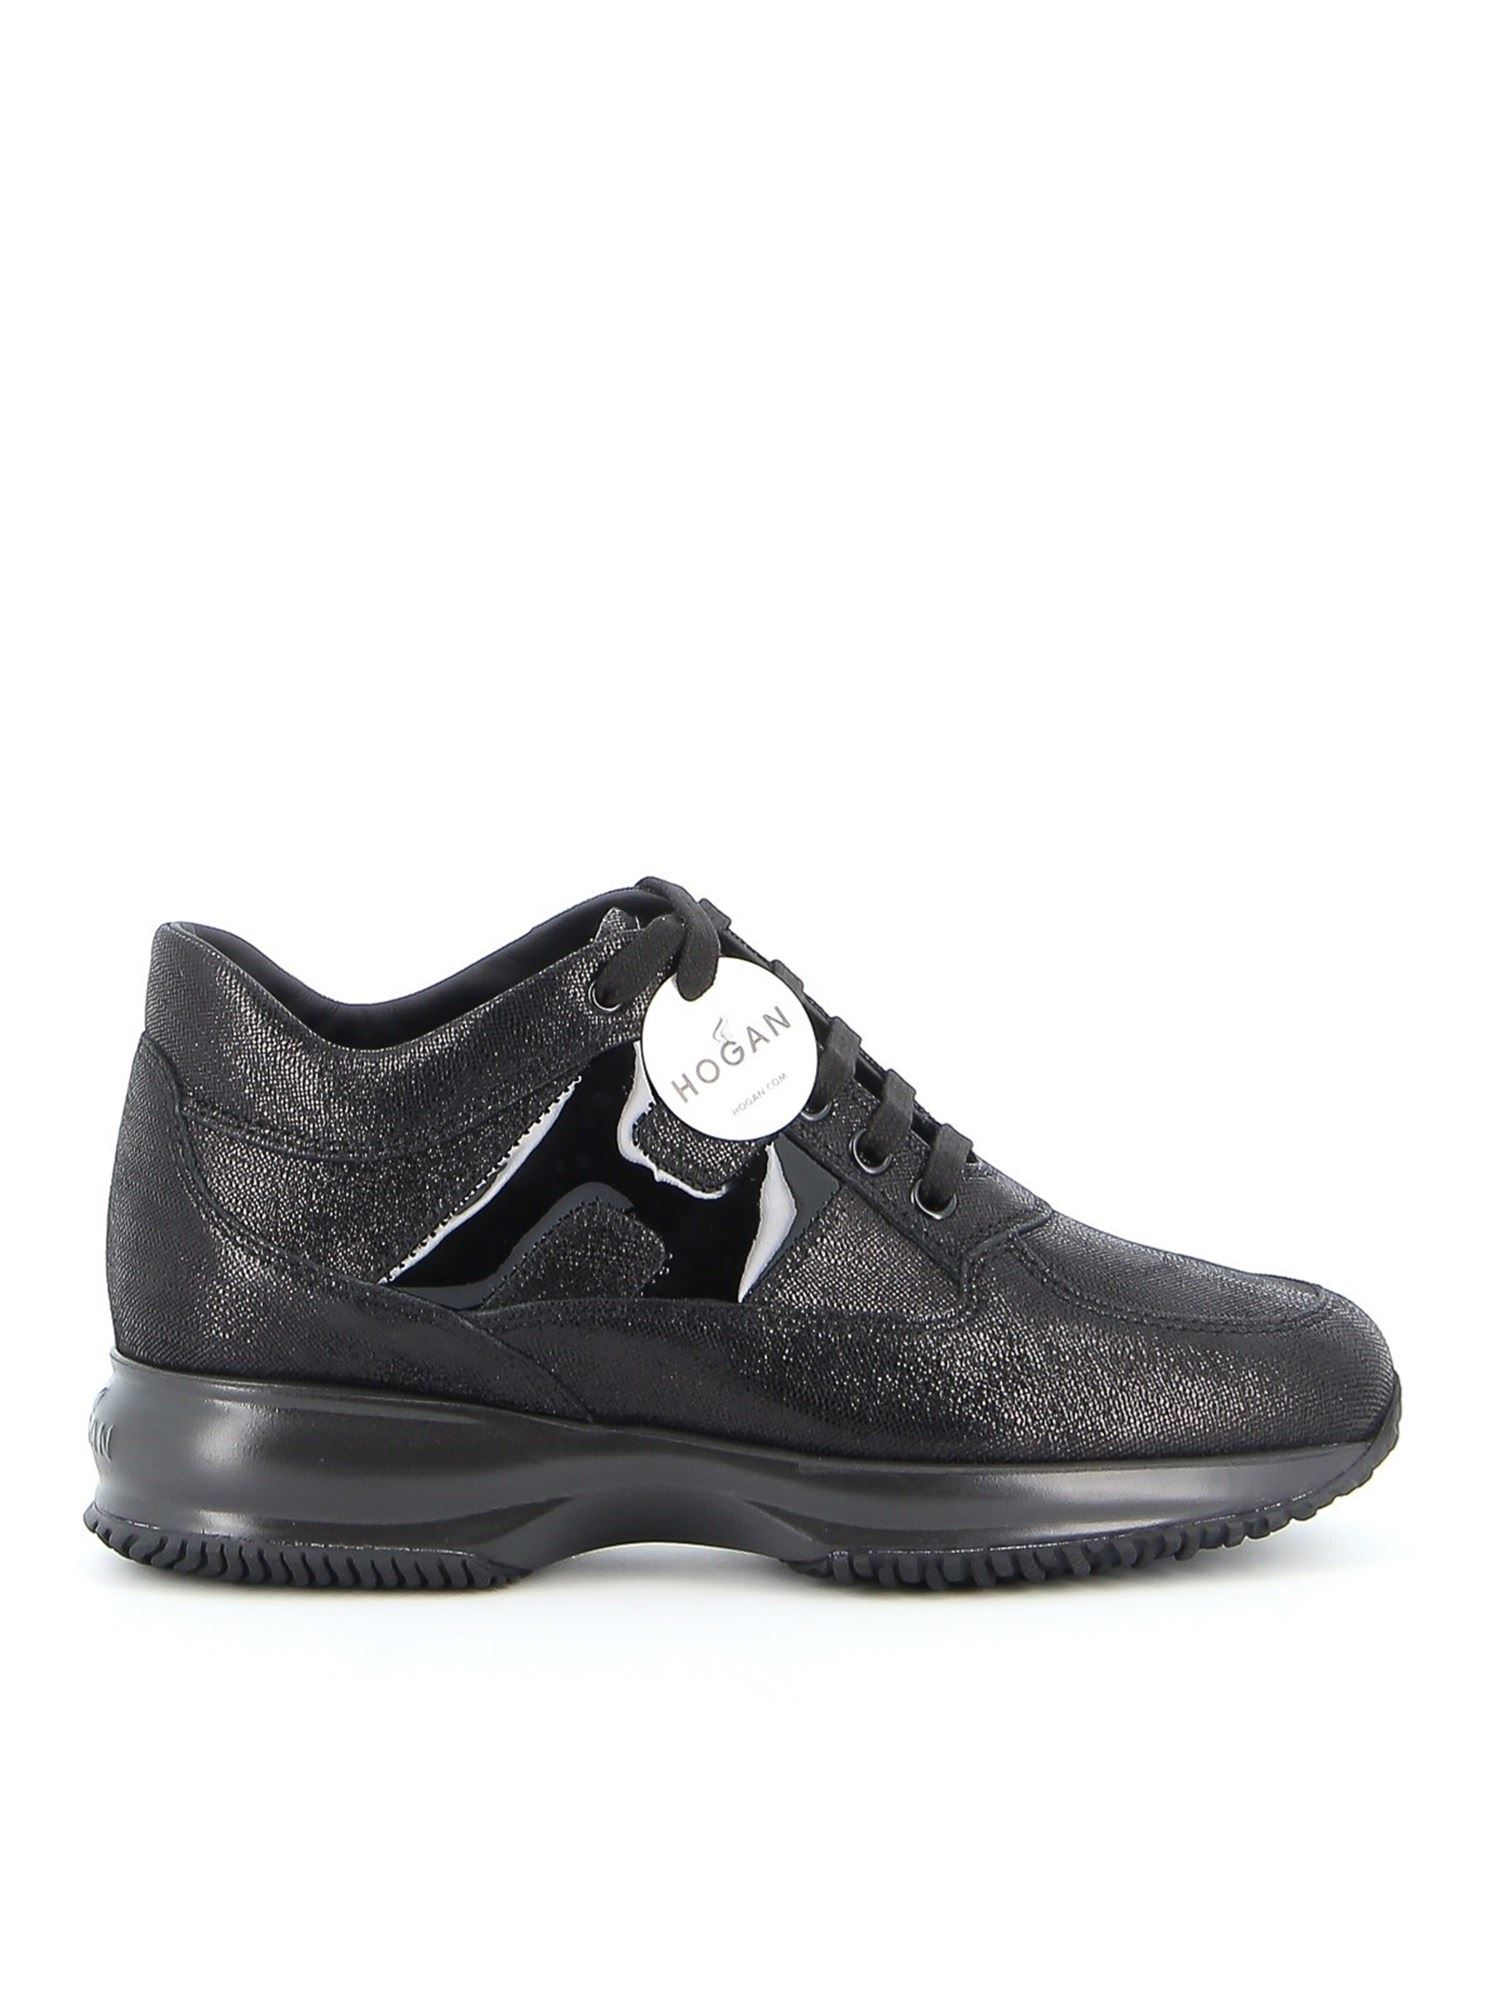 Hogan INTERACTIVE LAMINATED LEATHER SNEAKERS IN BLACK